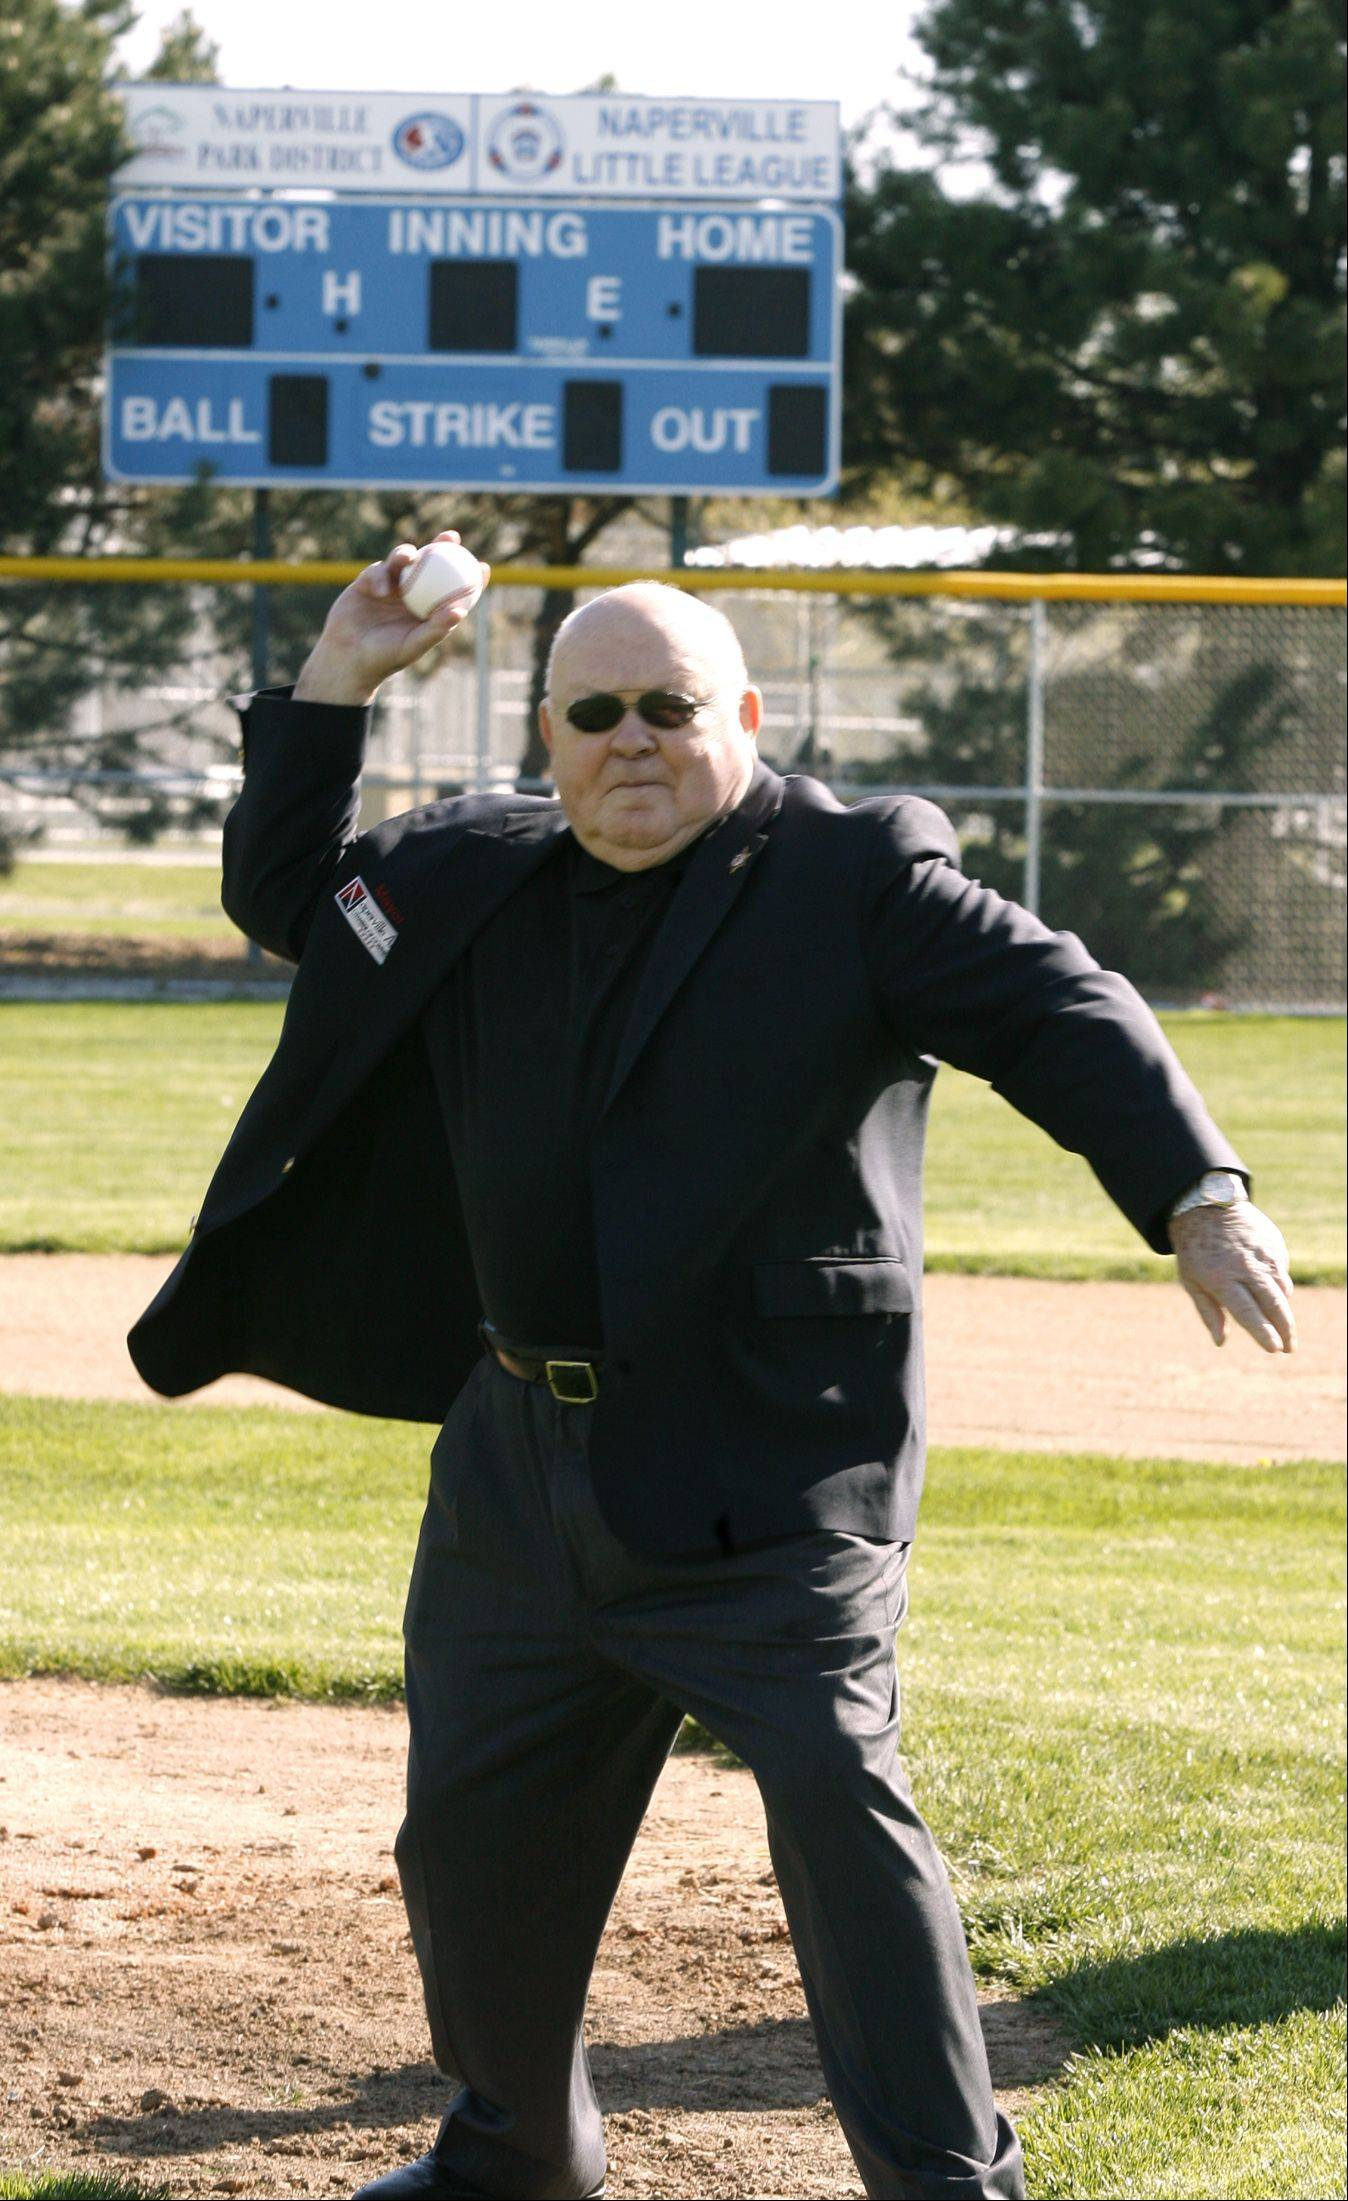 Naperville Mayor George Pradel throws out a first pitch, as the Naperville Park District celebrates the grand reopening of its recently renovated Knoch Park, and the opening of Naperville Little League's 60th season.